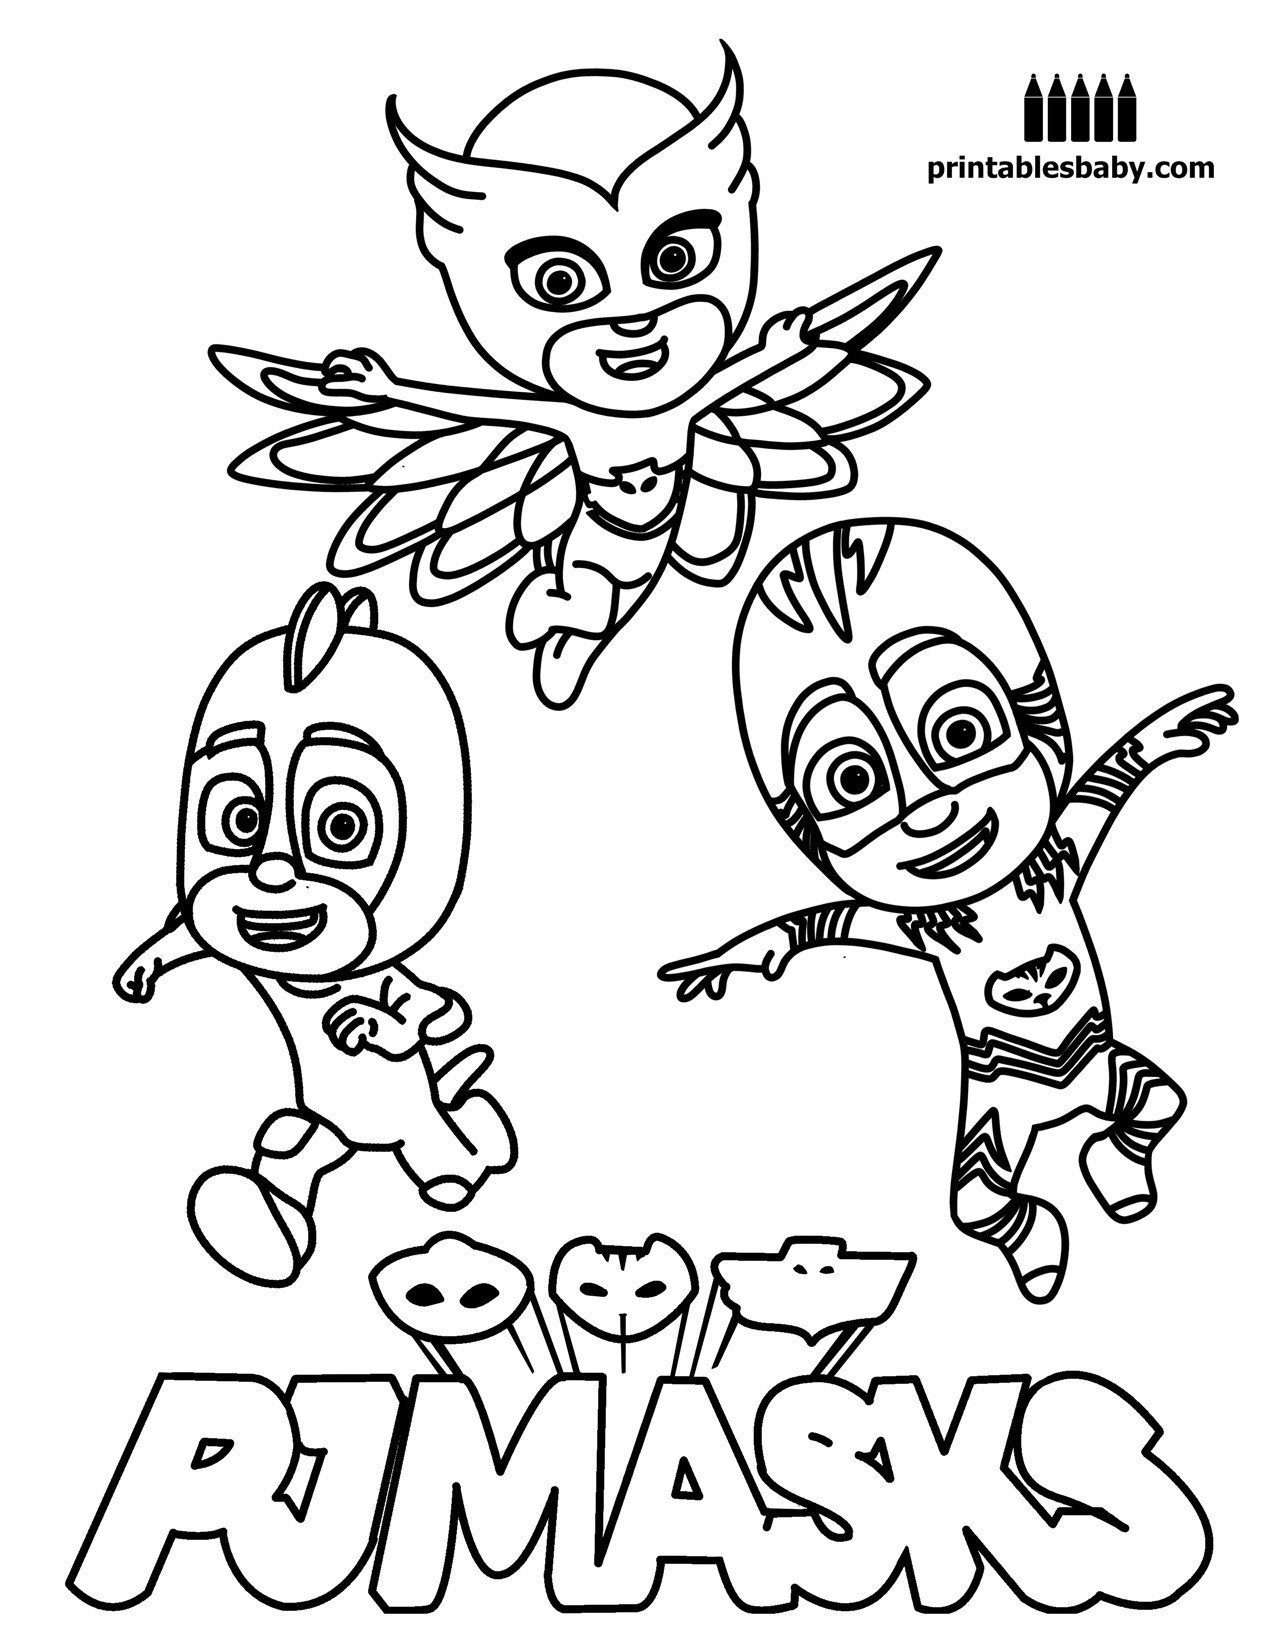 Pj Masks Free Printable Coloring Pages For Kids